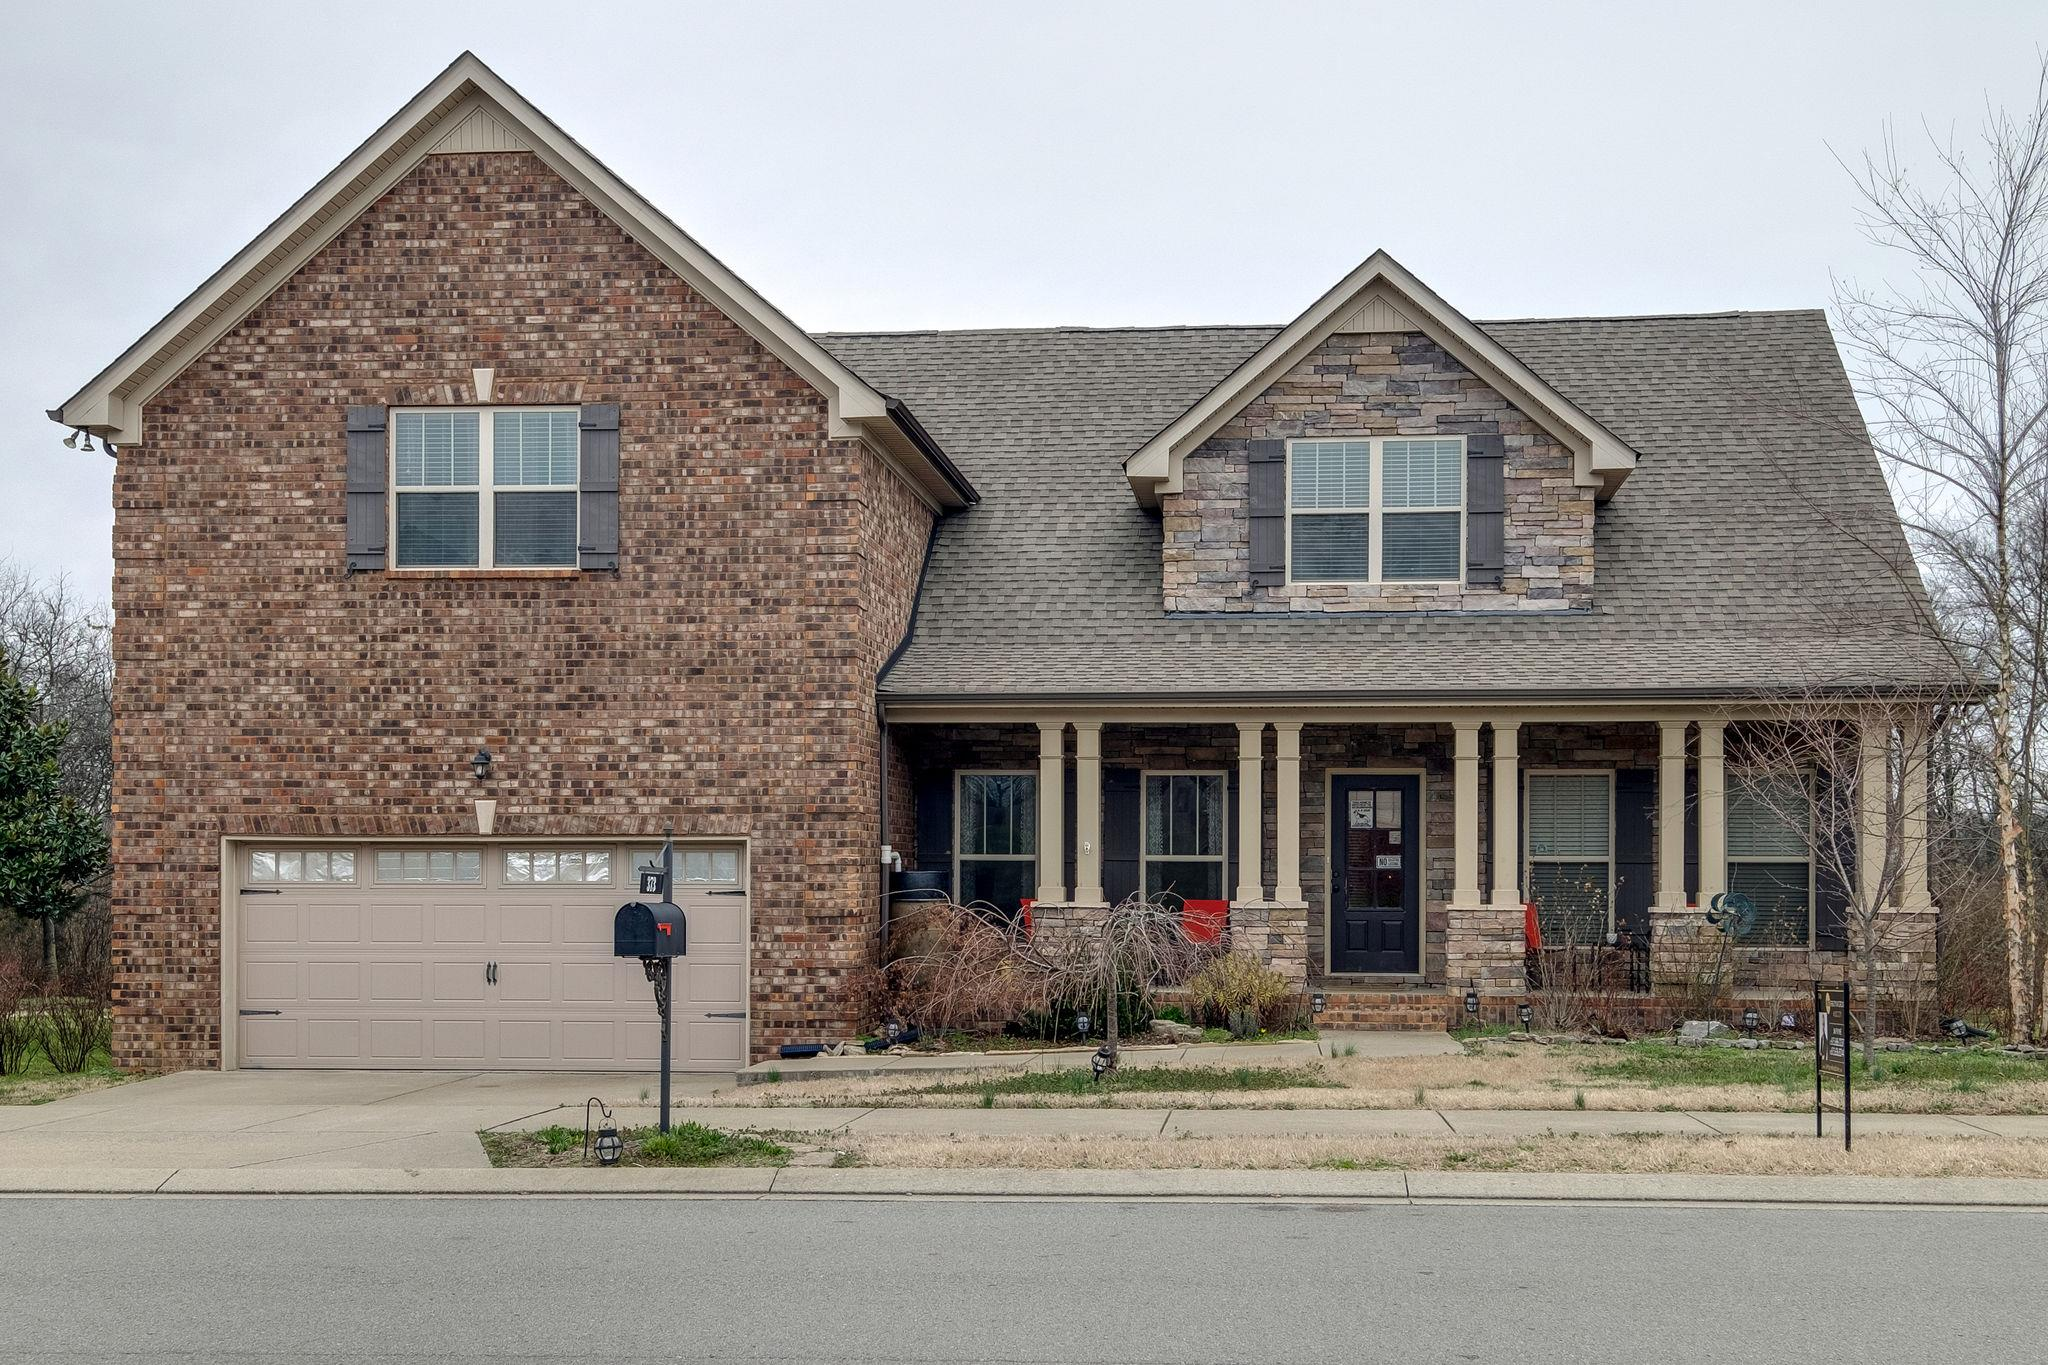 373 Goodman Dr 37066 - One of Gallatin Homes for Sale